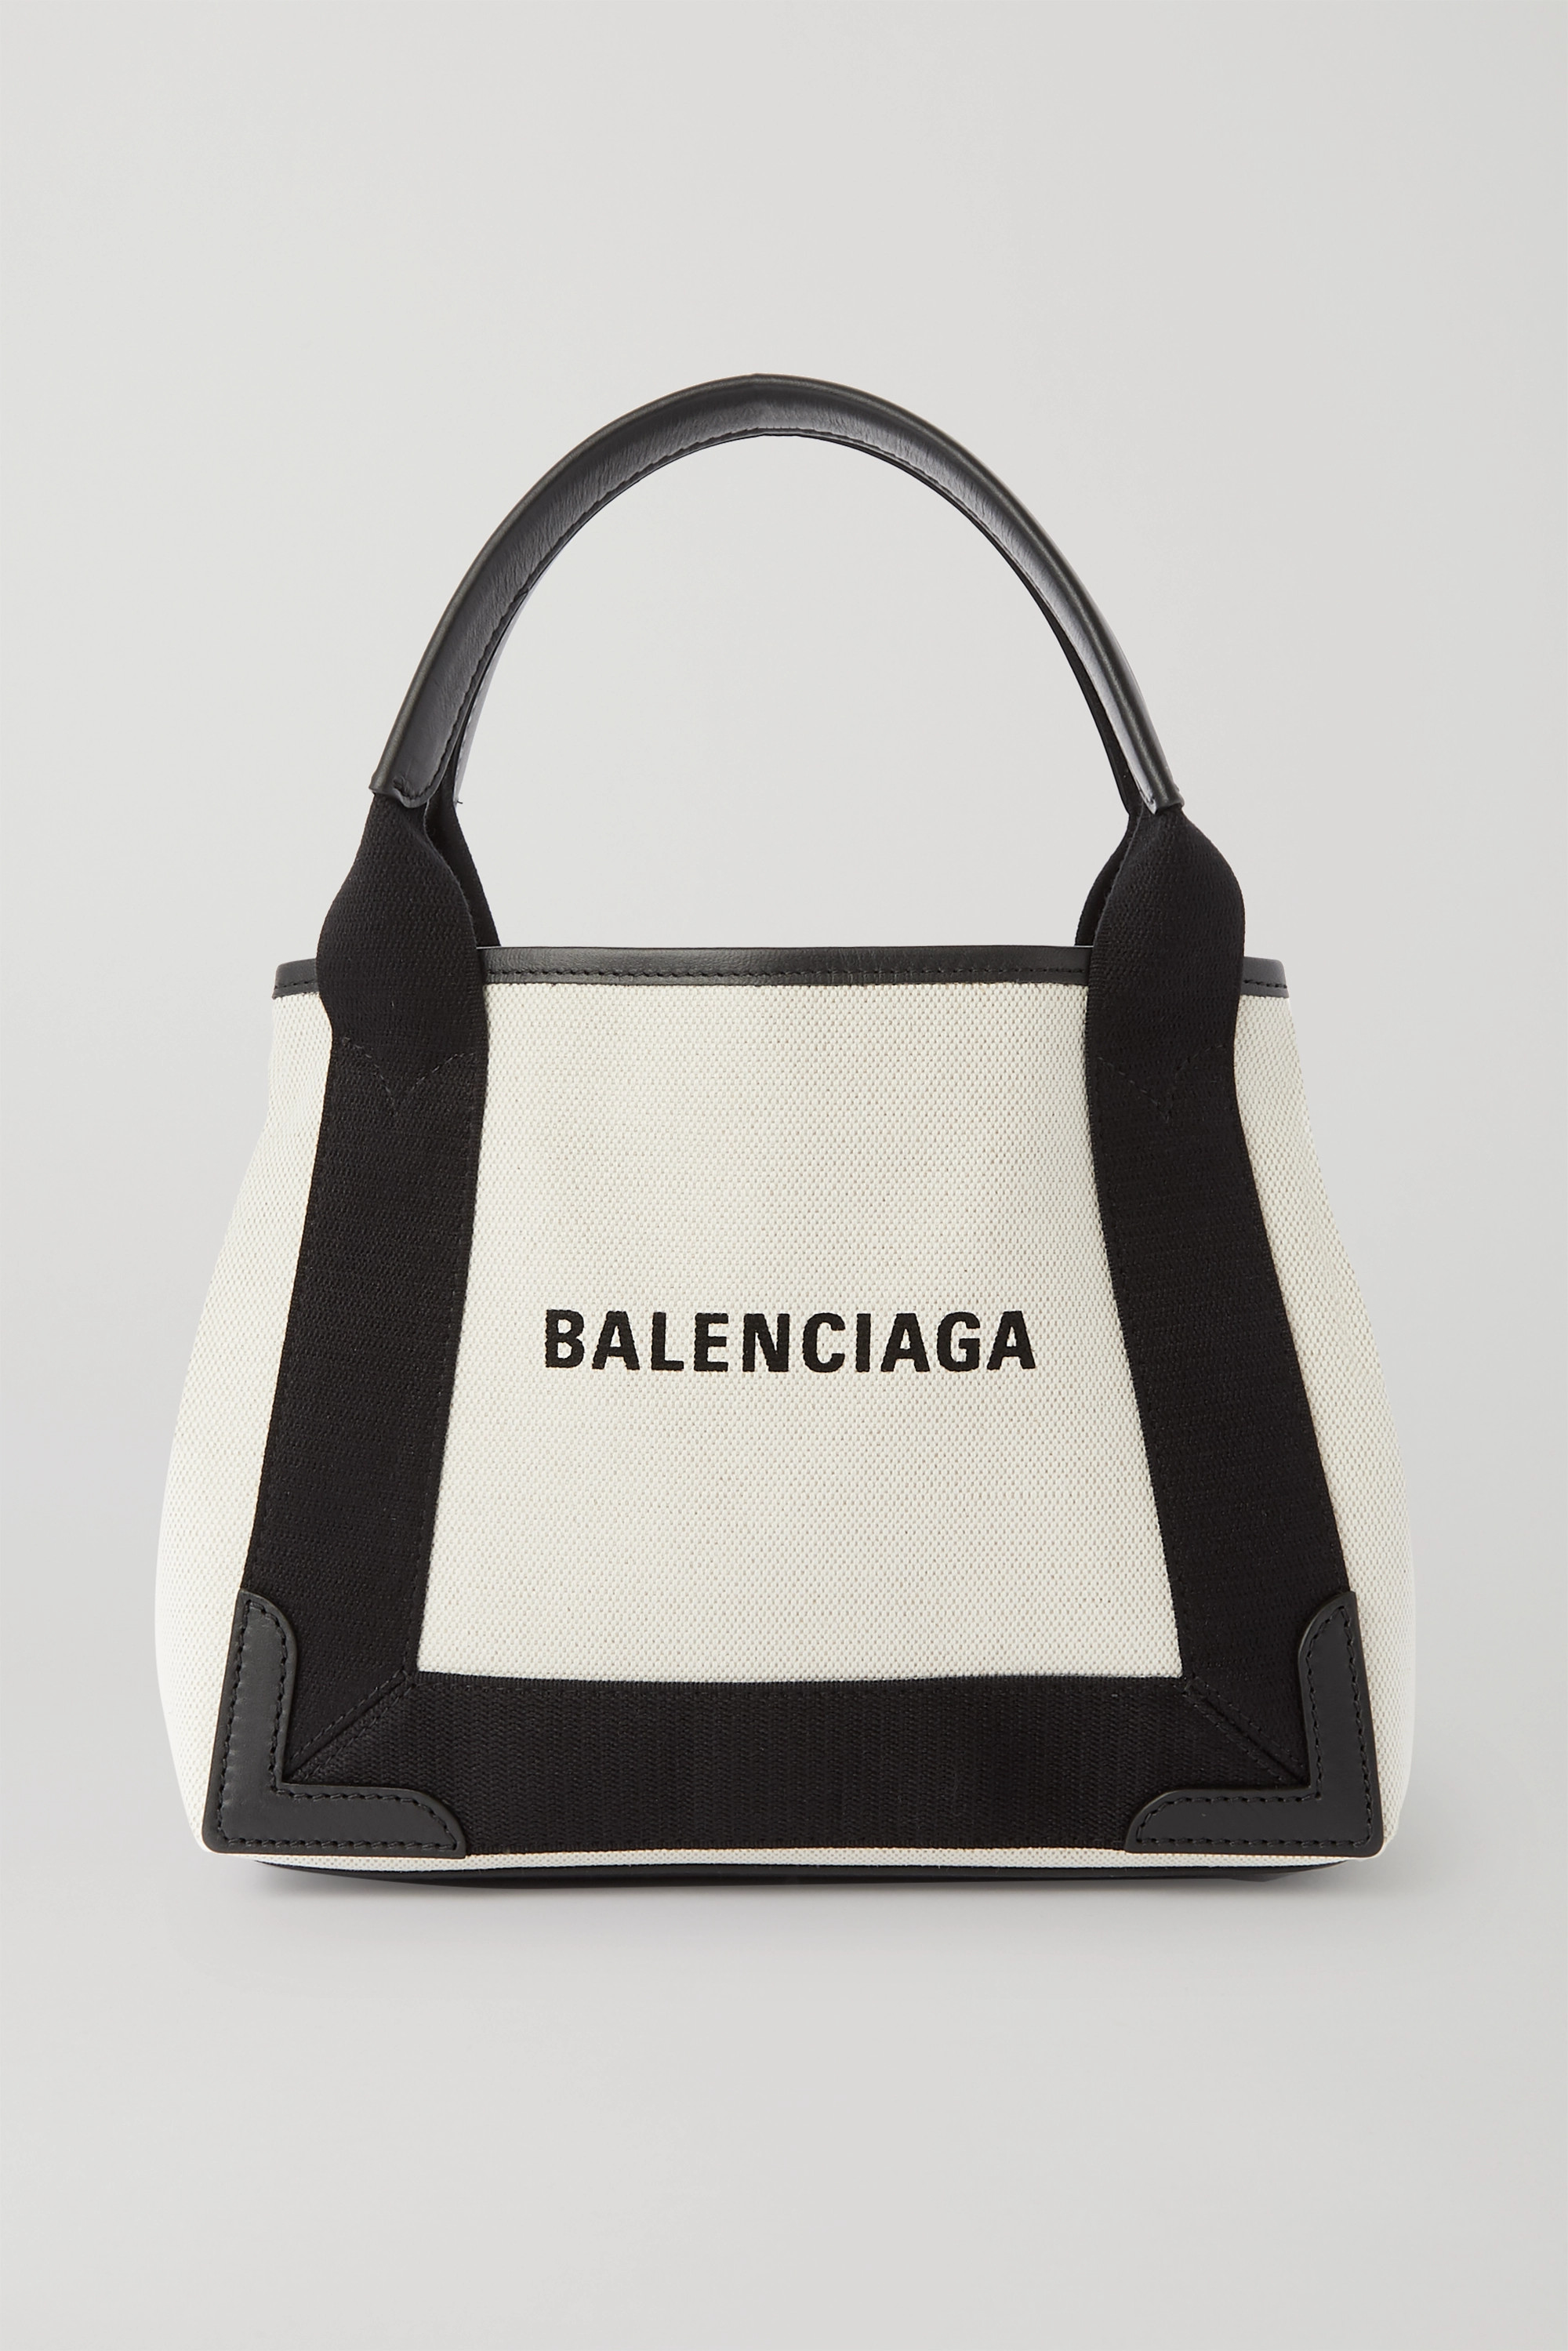 Balenciaga Navy XS Cabas leather-trimmed printed canvas tote